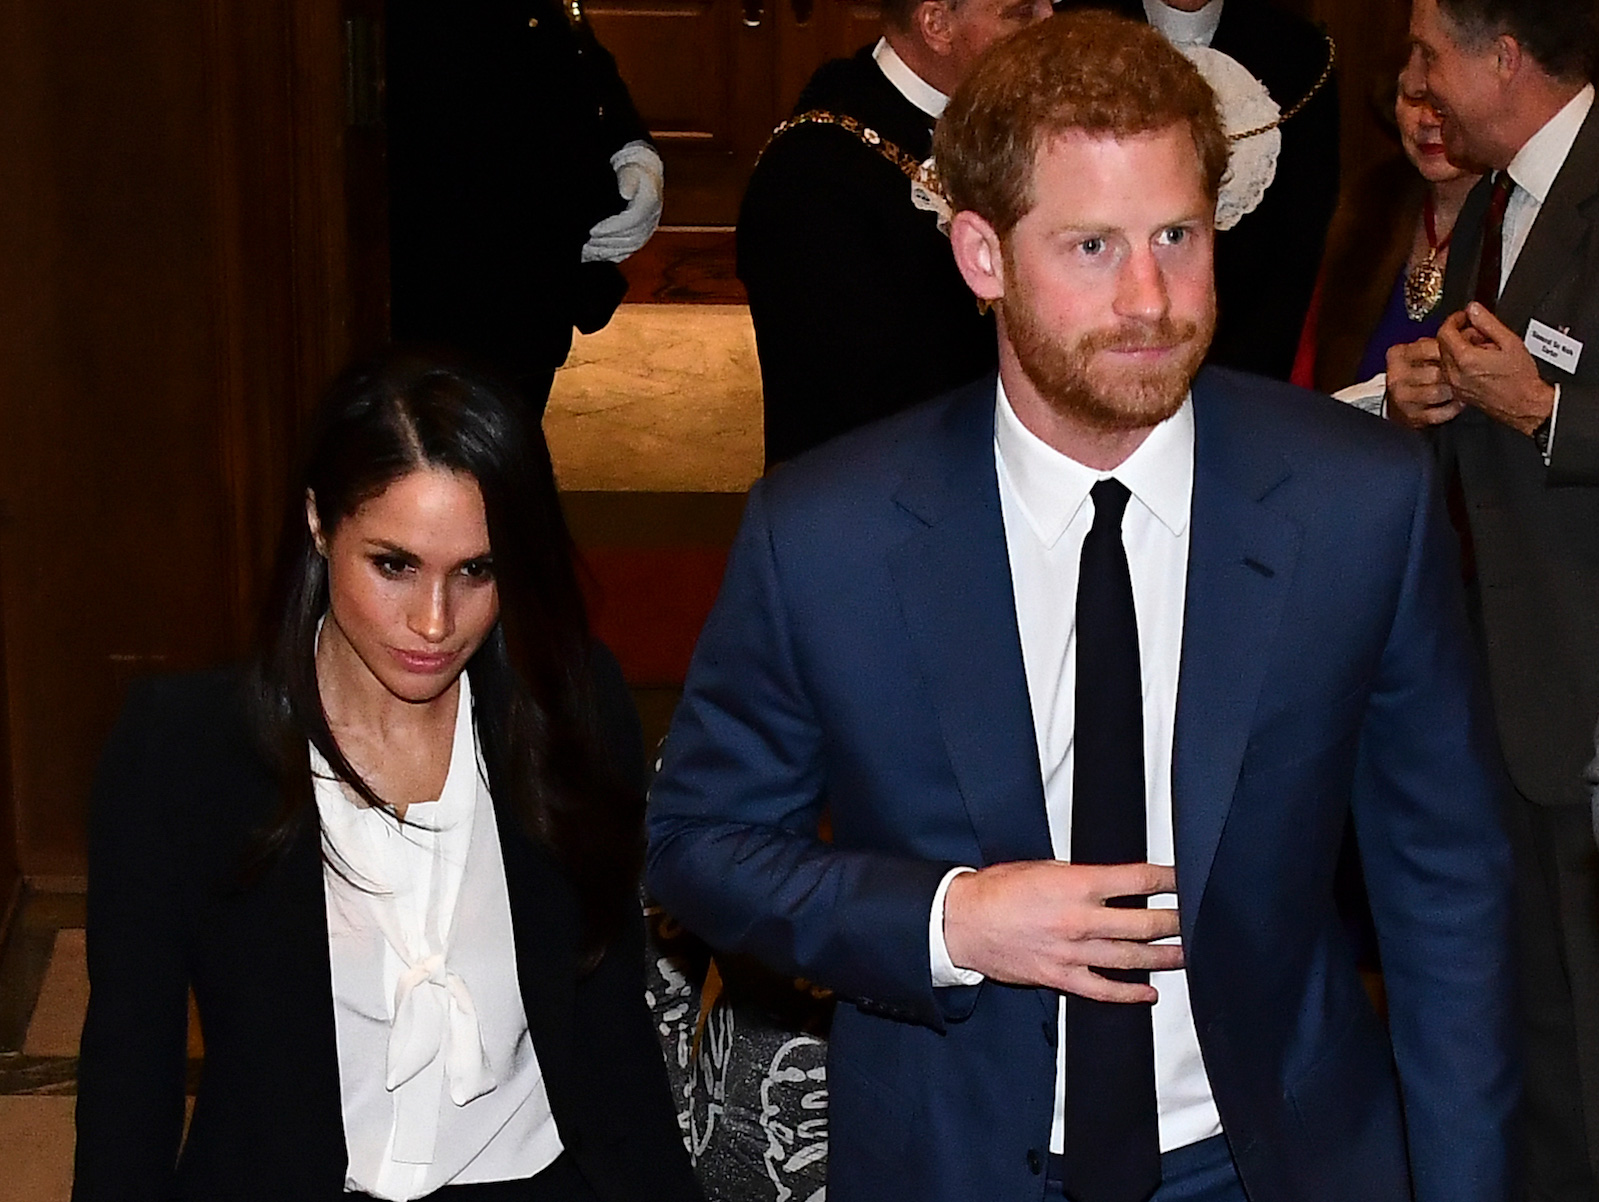 Meghan Markle and Prince Harry at the 2018 Endeavour Fund Awards at Goldsmiths' Hall on February 1, 2018 in London, England.